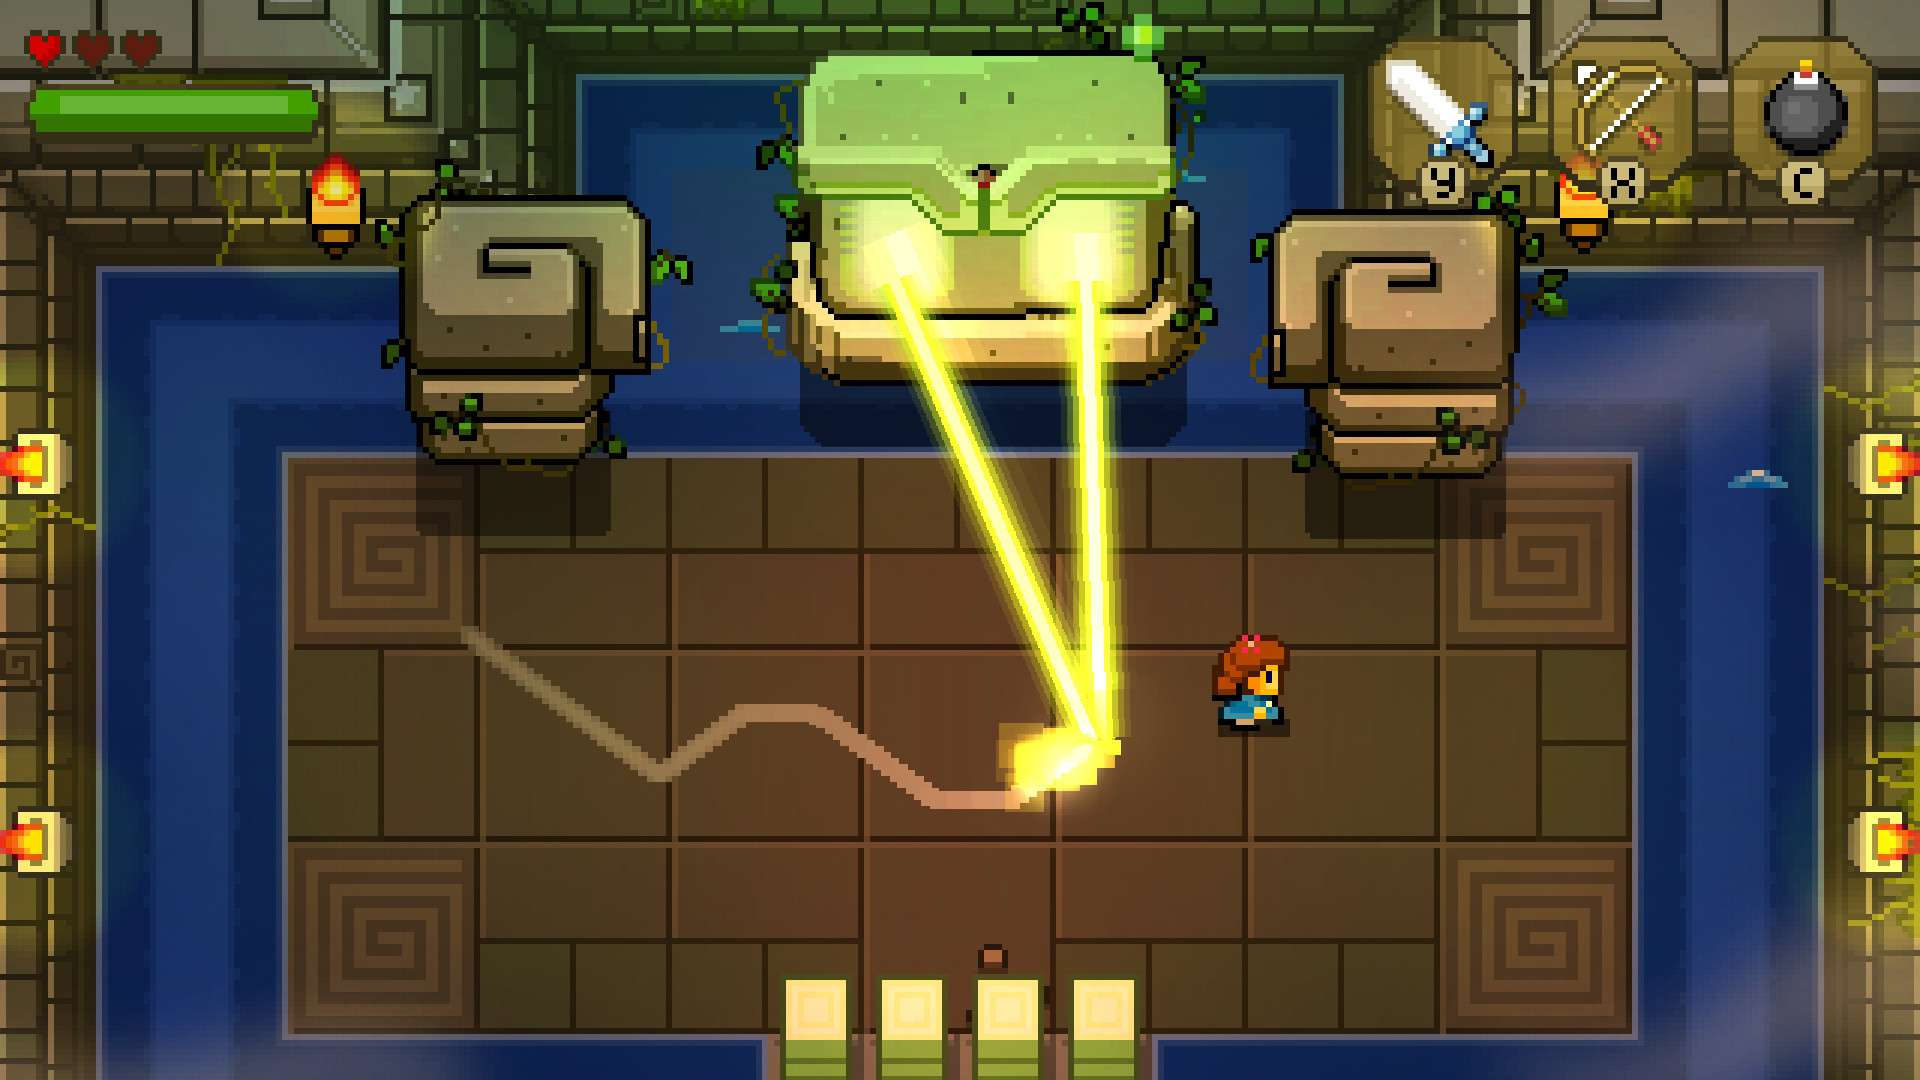 Blossom Tales: The Sleeping King #1